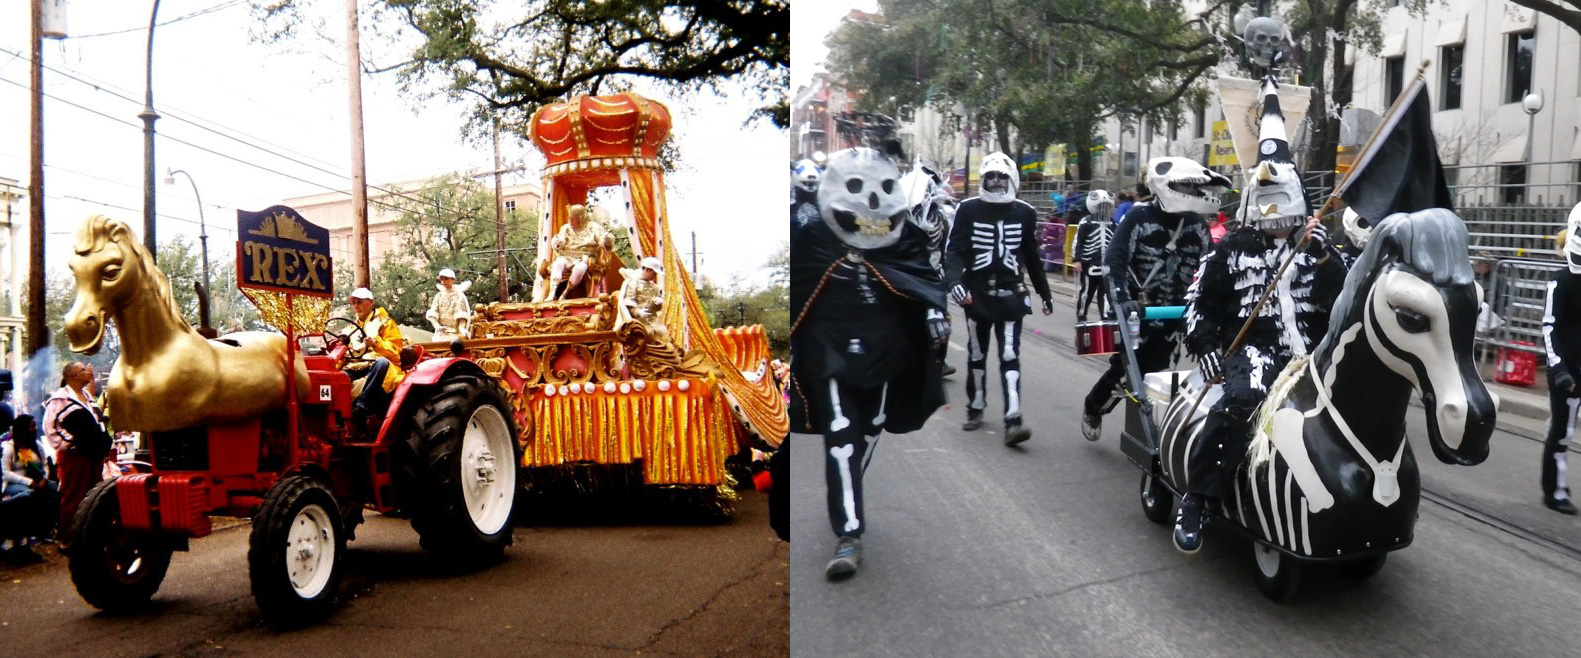 Skelly before and after